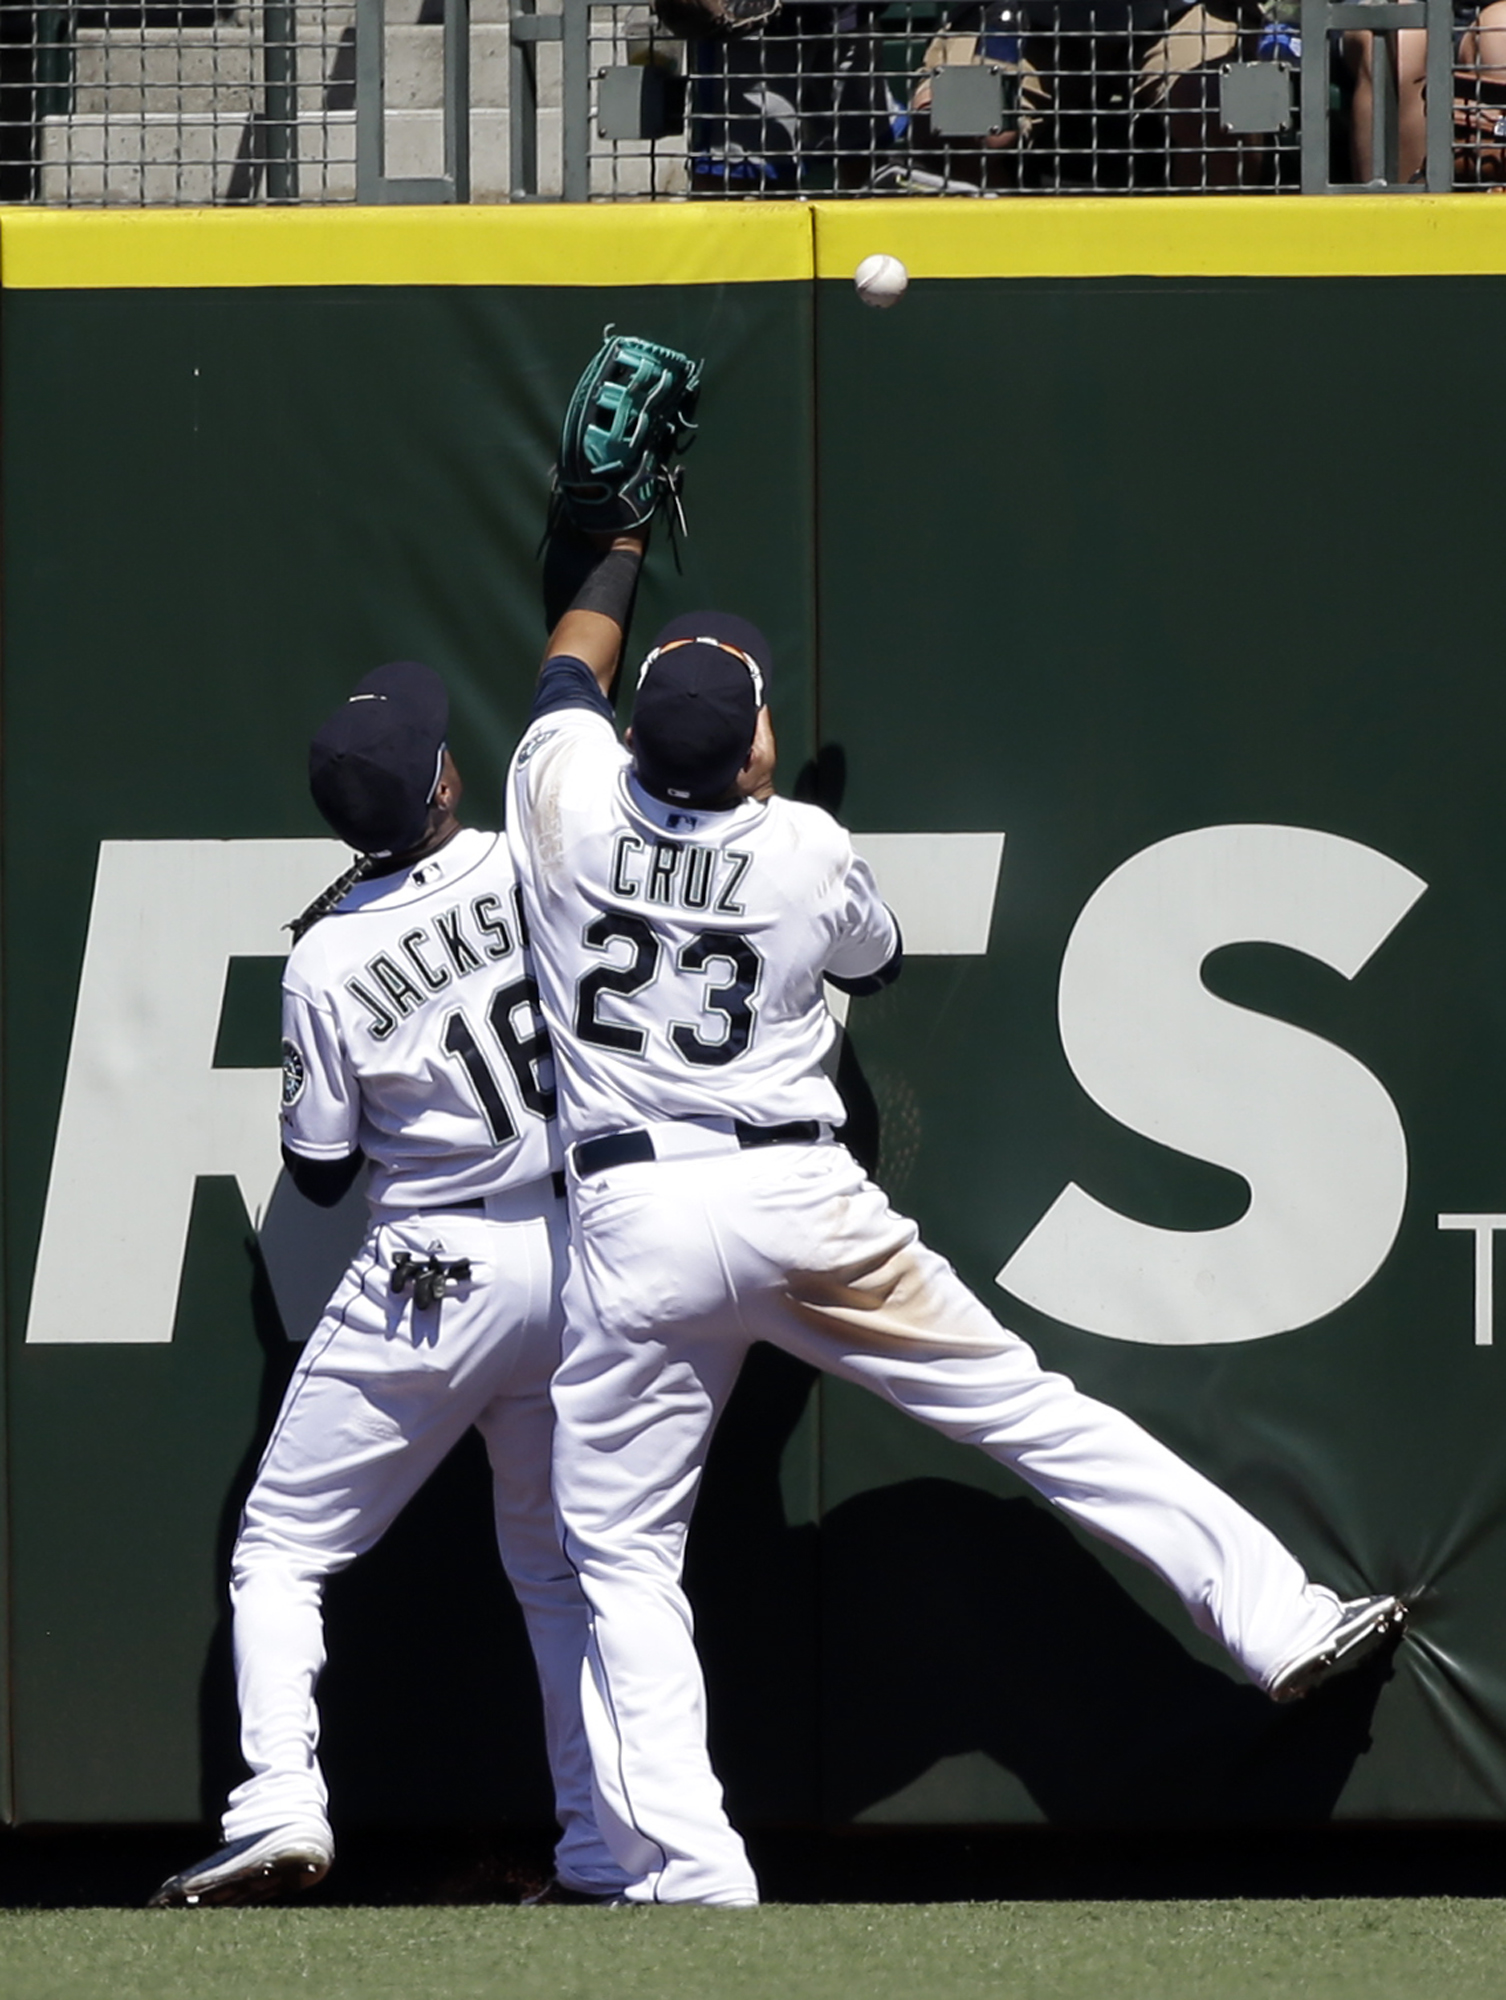 Seattle Mariners outfielders Austin Jackson (16) and Nelson Cruz collide as they chase a two-run triple from Arizona Diamondbacks' David Peralta in the seventh inning of a baseball game Wednesday, July 29, 2015, in Seattle. (AP Photo/Elaine Thompson)